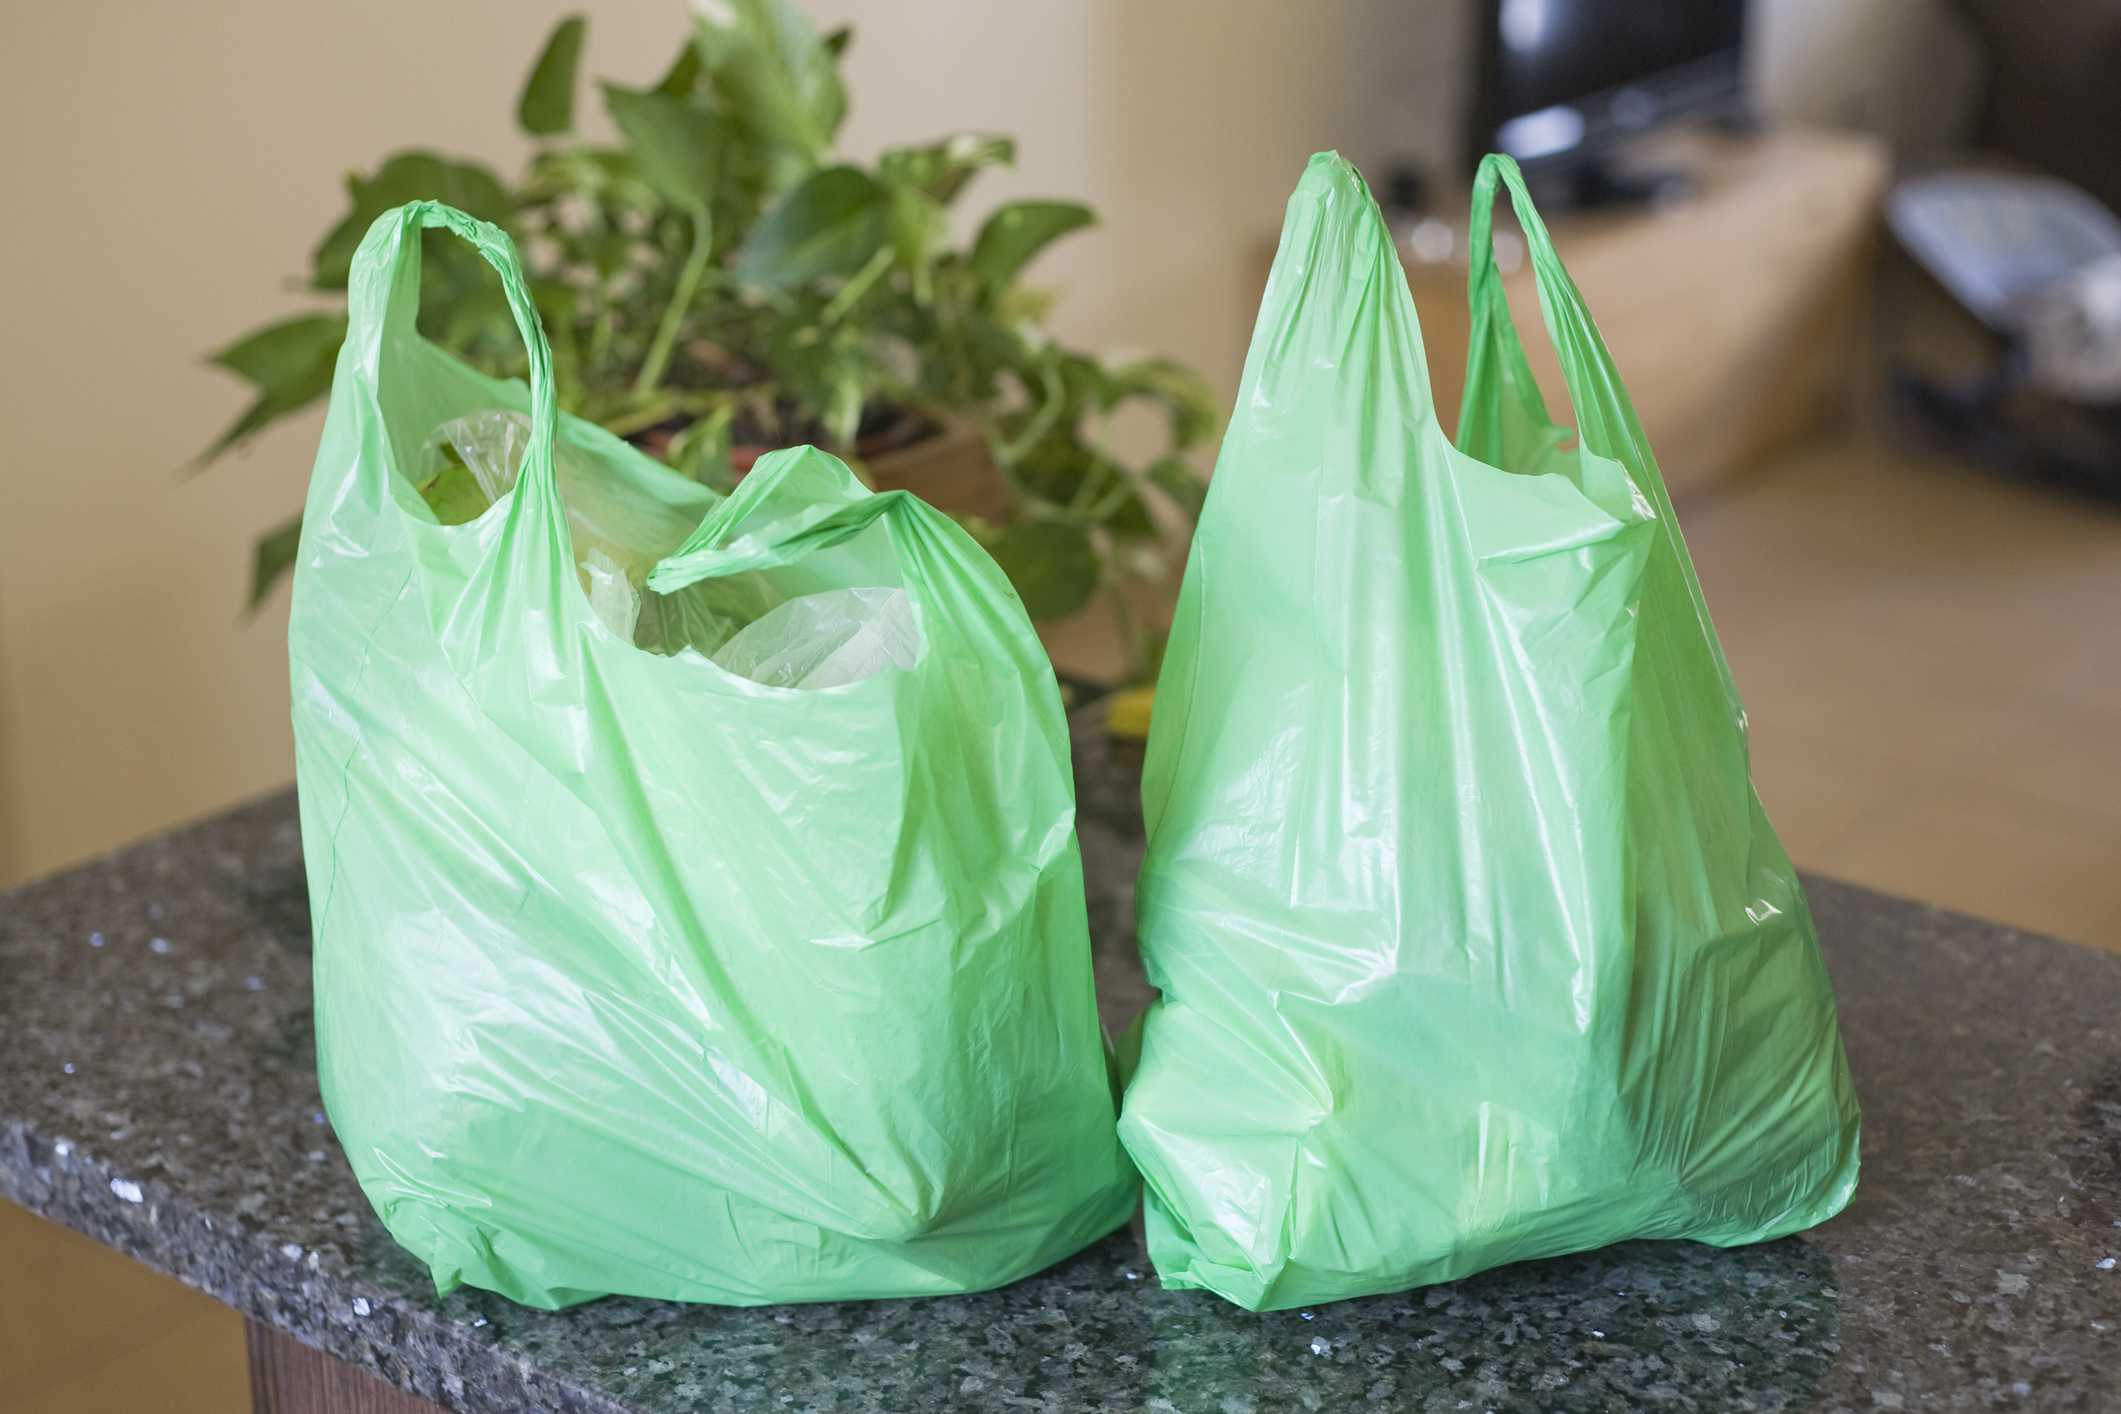 Green plastic bags on kitchen worktop.